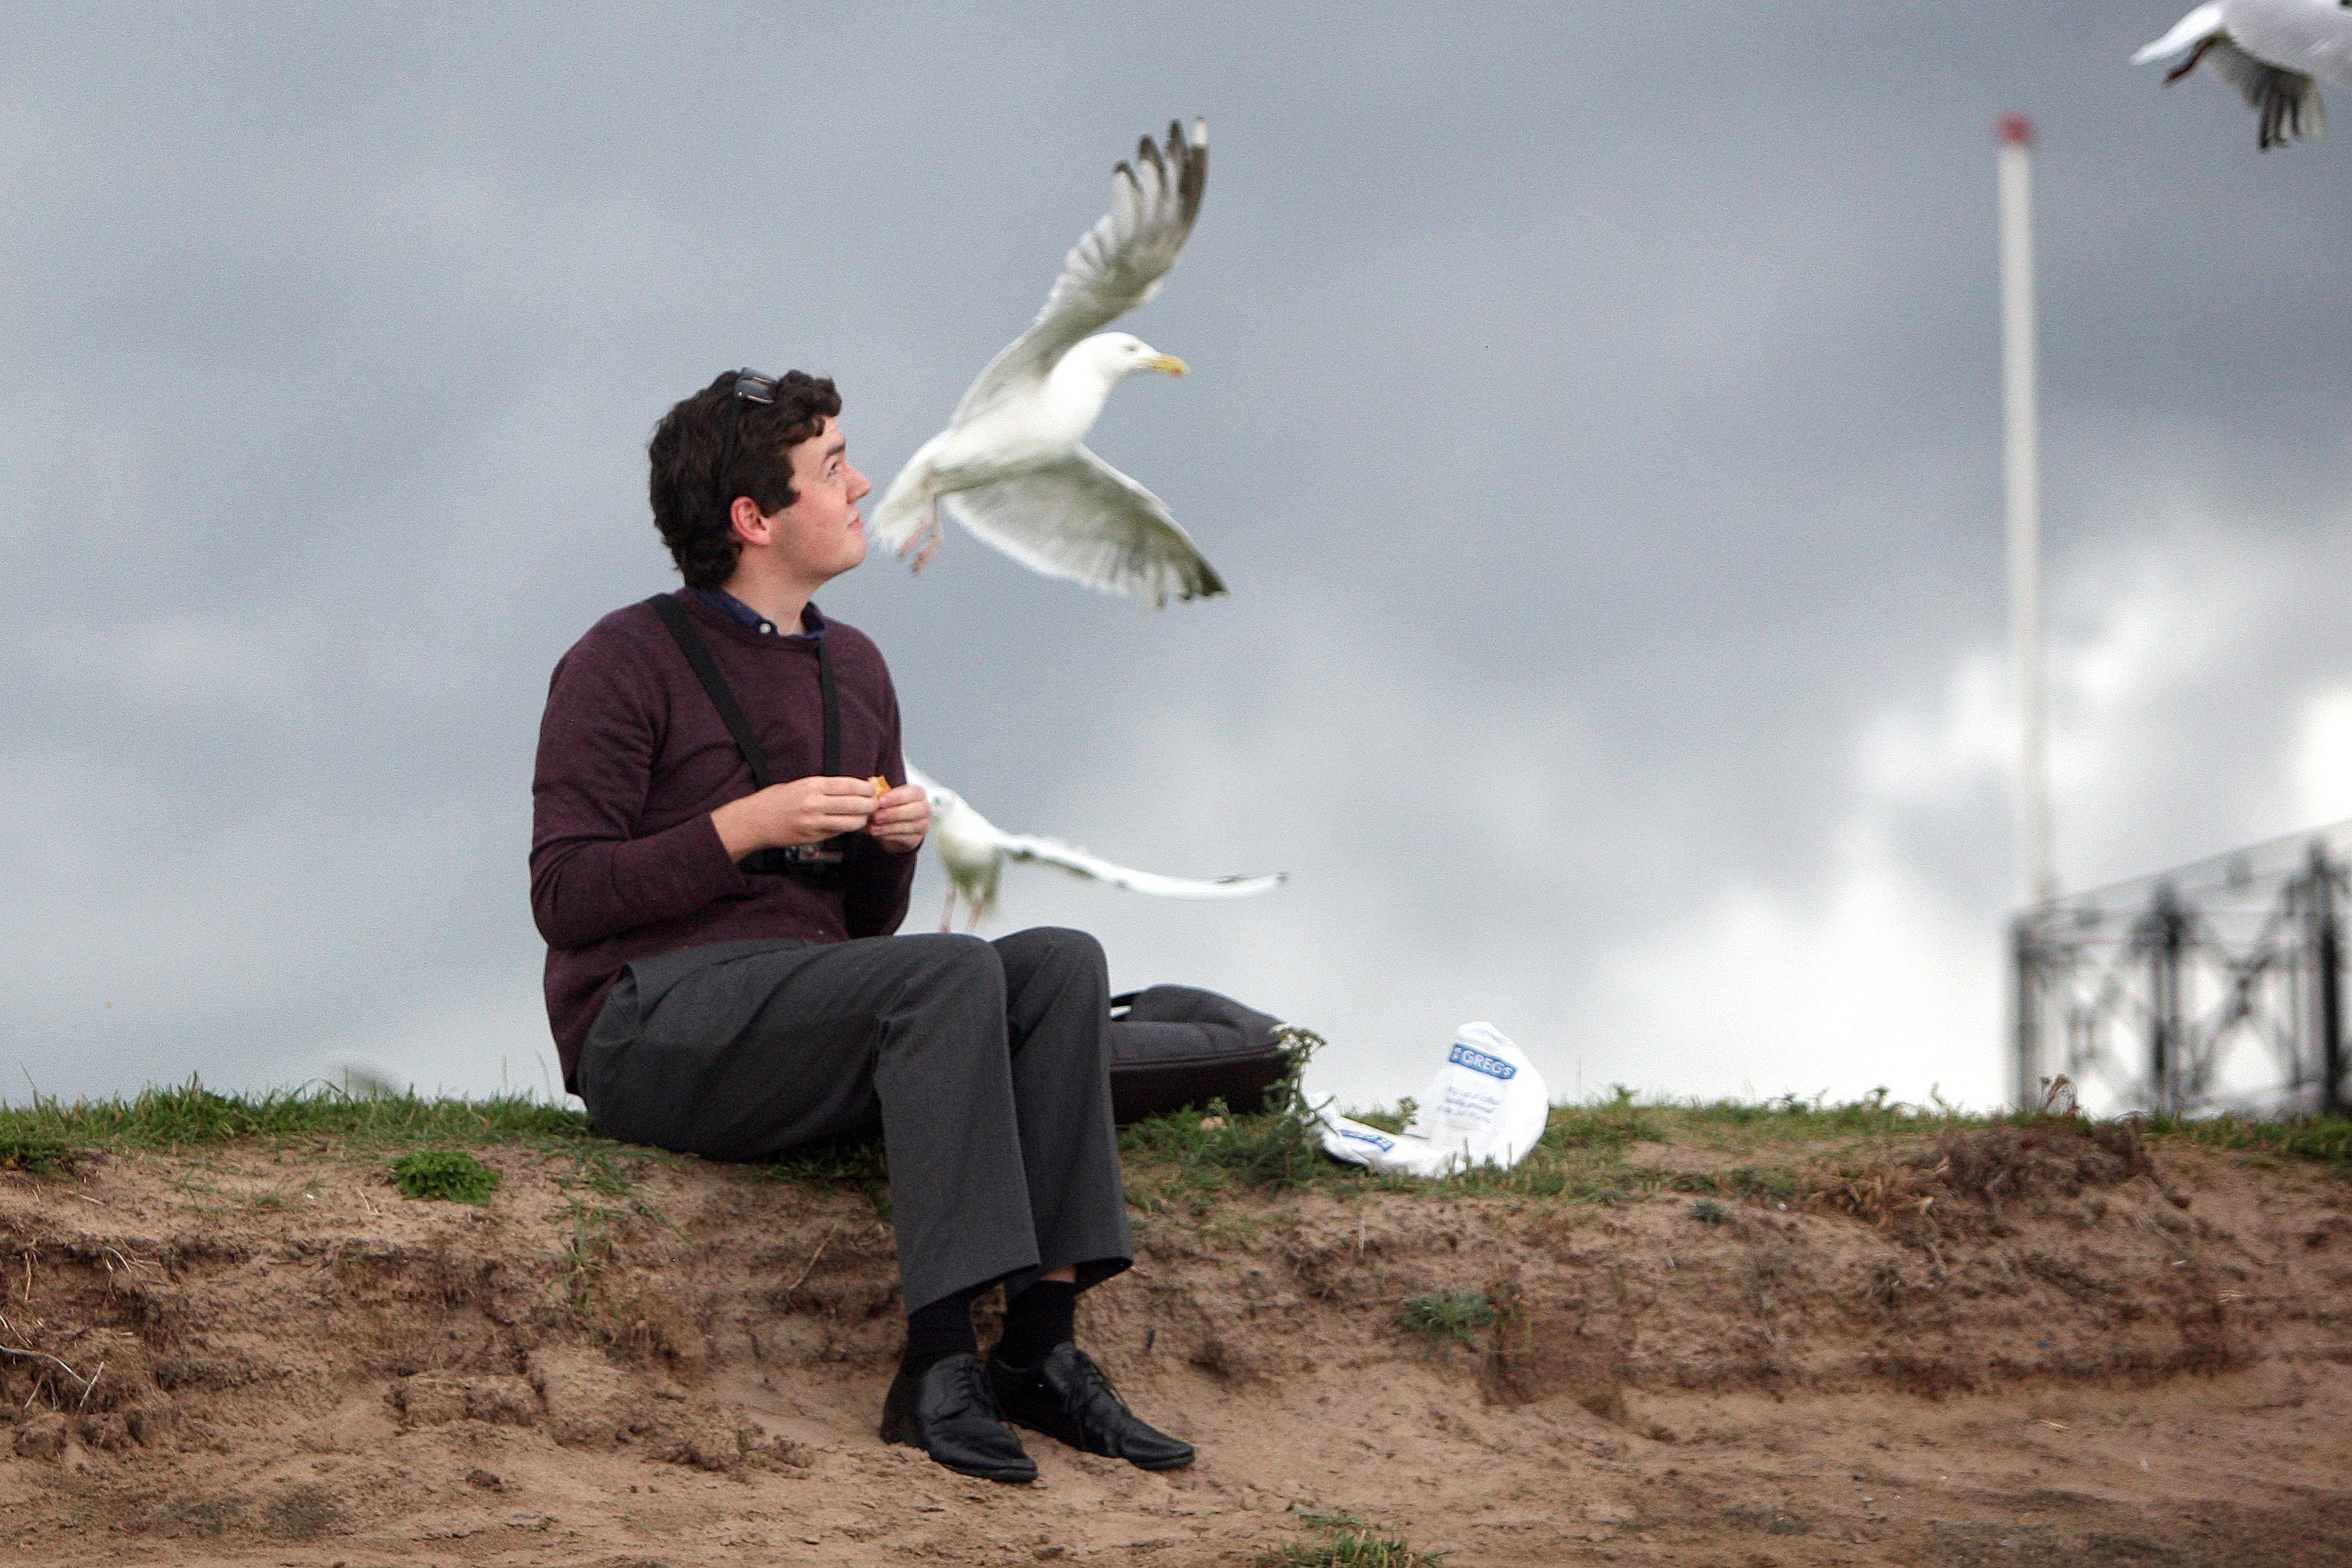 Dundee reporter Ciaran Sneddon enjoying lunch in Broughty Ferry while gulls circle overhead.